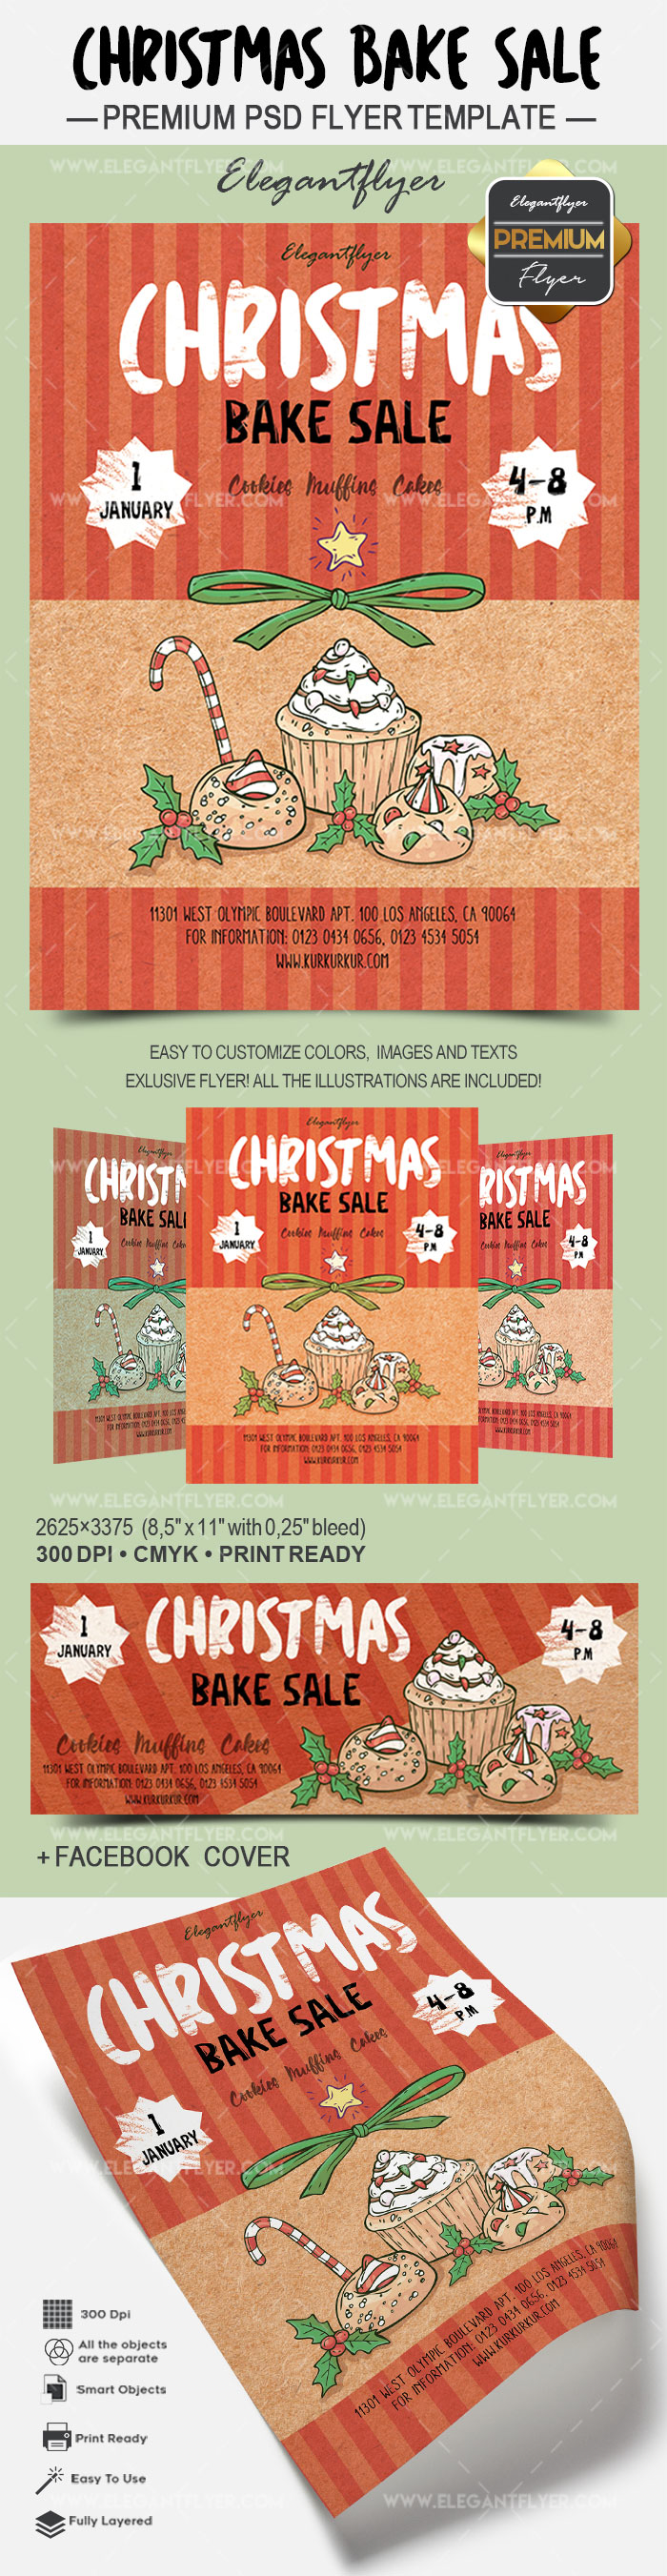 Christmas Bake Sale – Flyer PSD Template + Facebook Cover